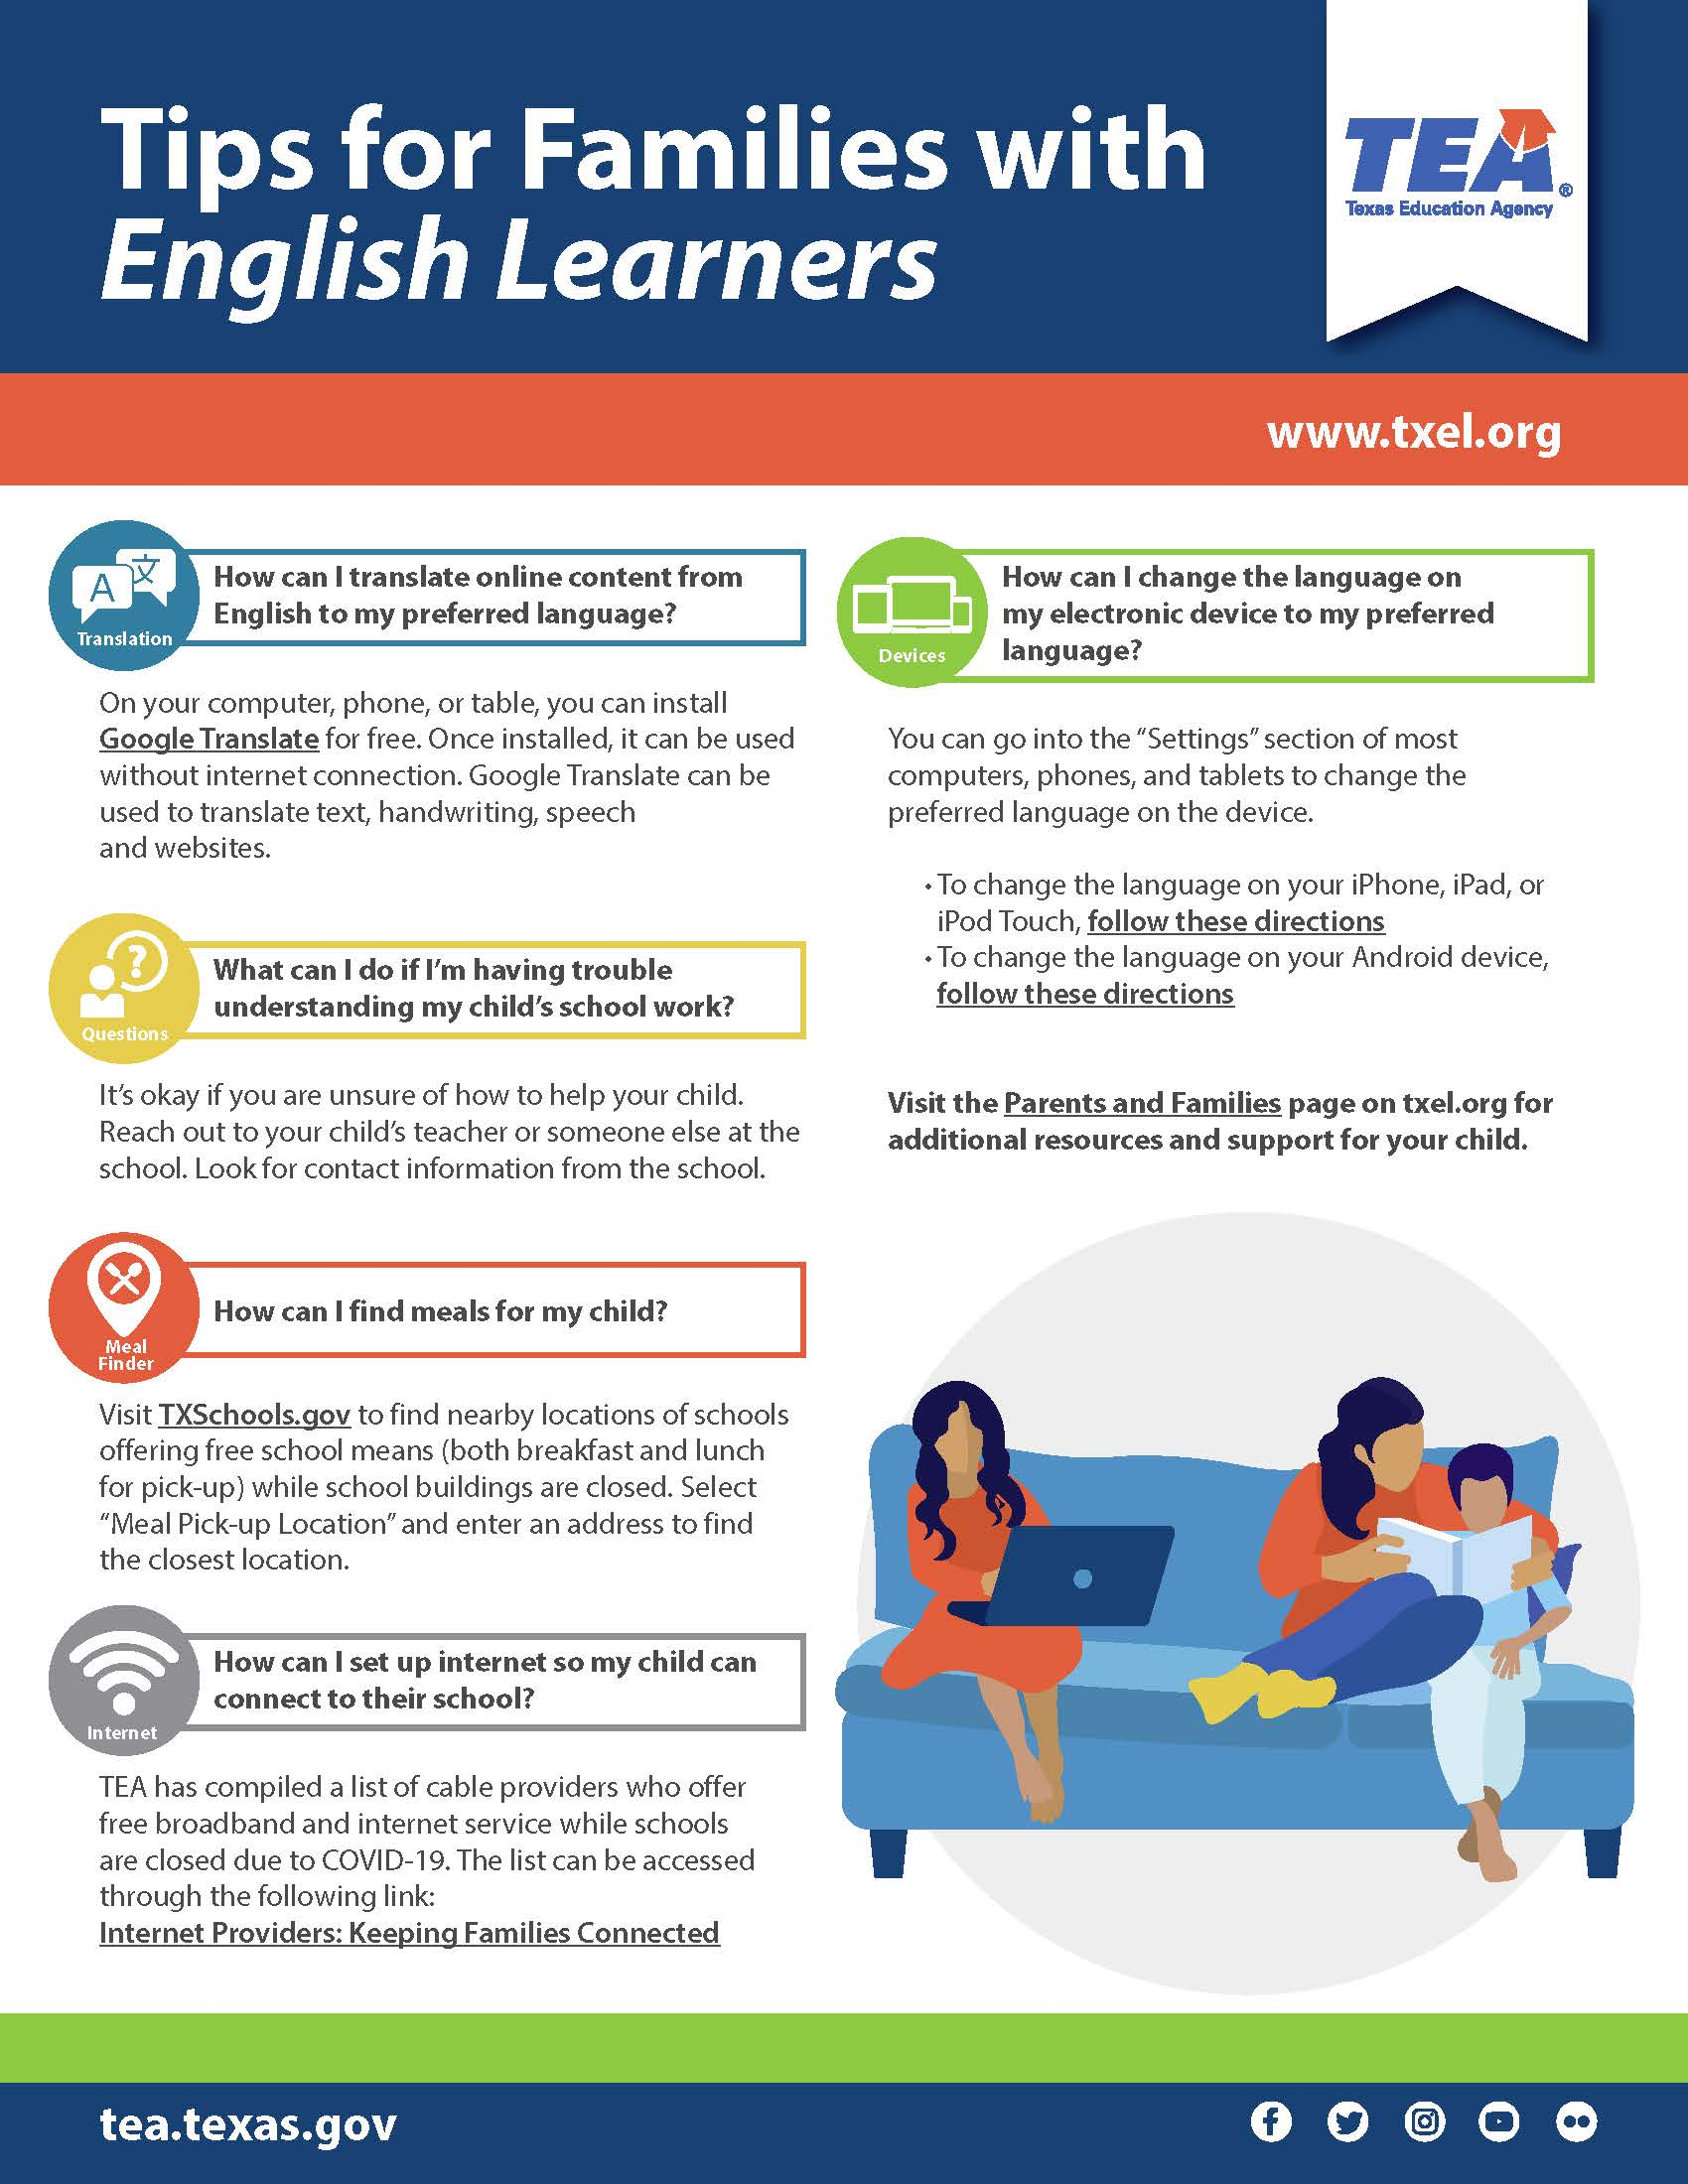 Tips for Families with English Learners